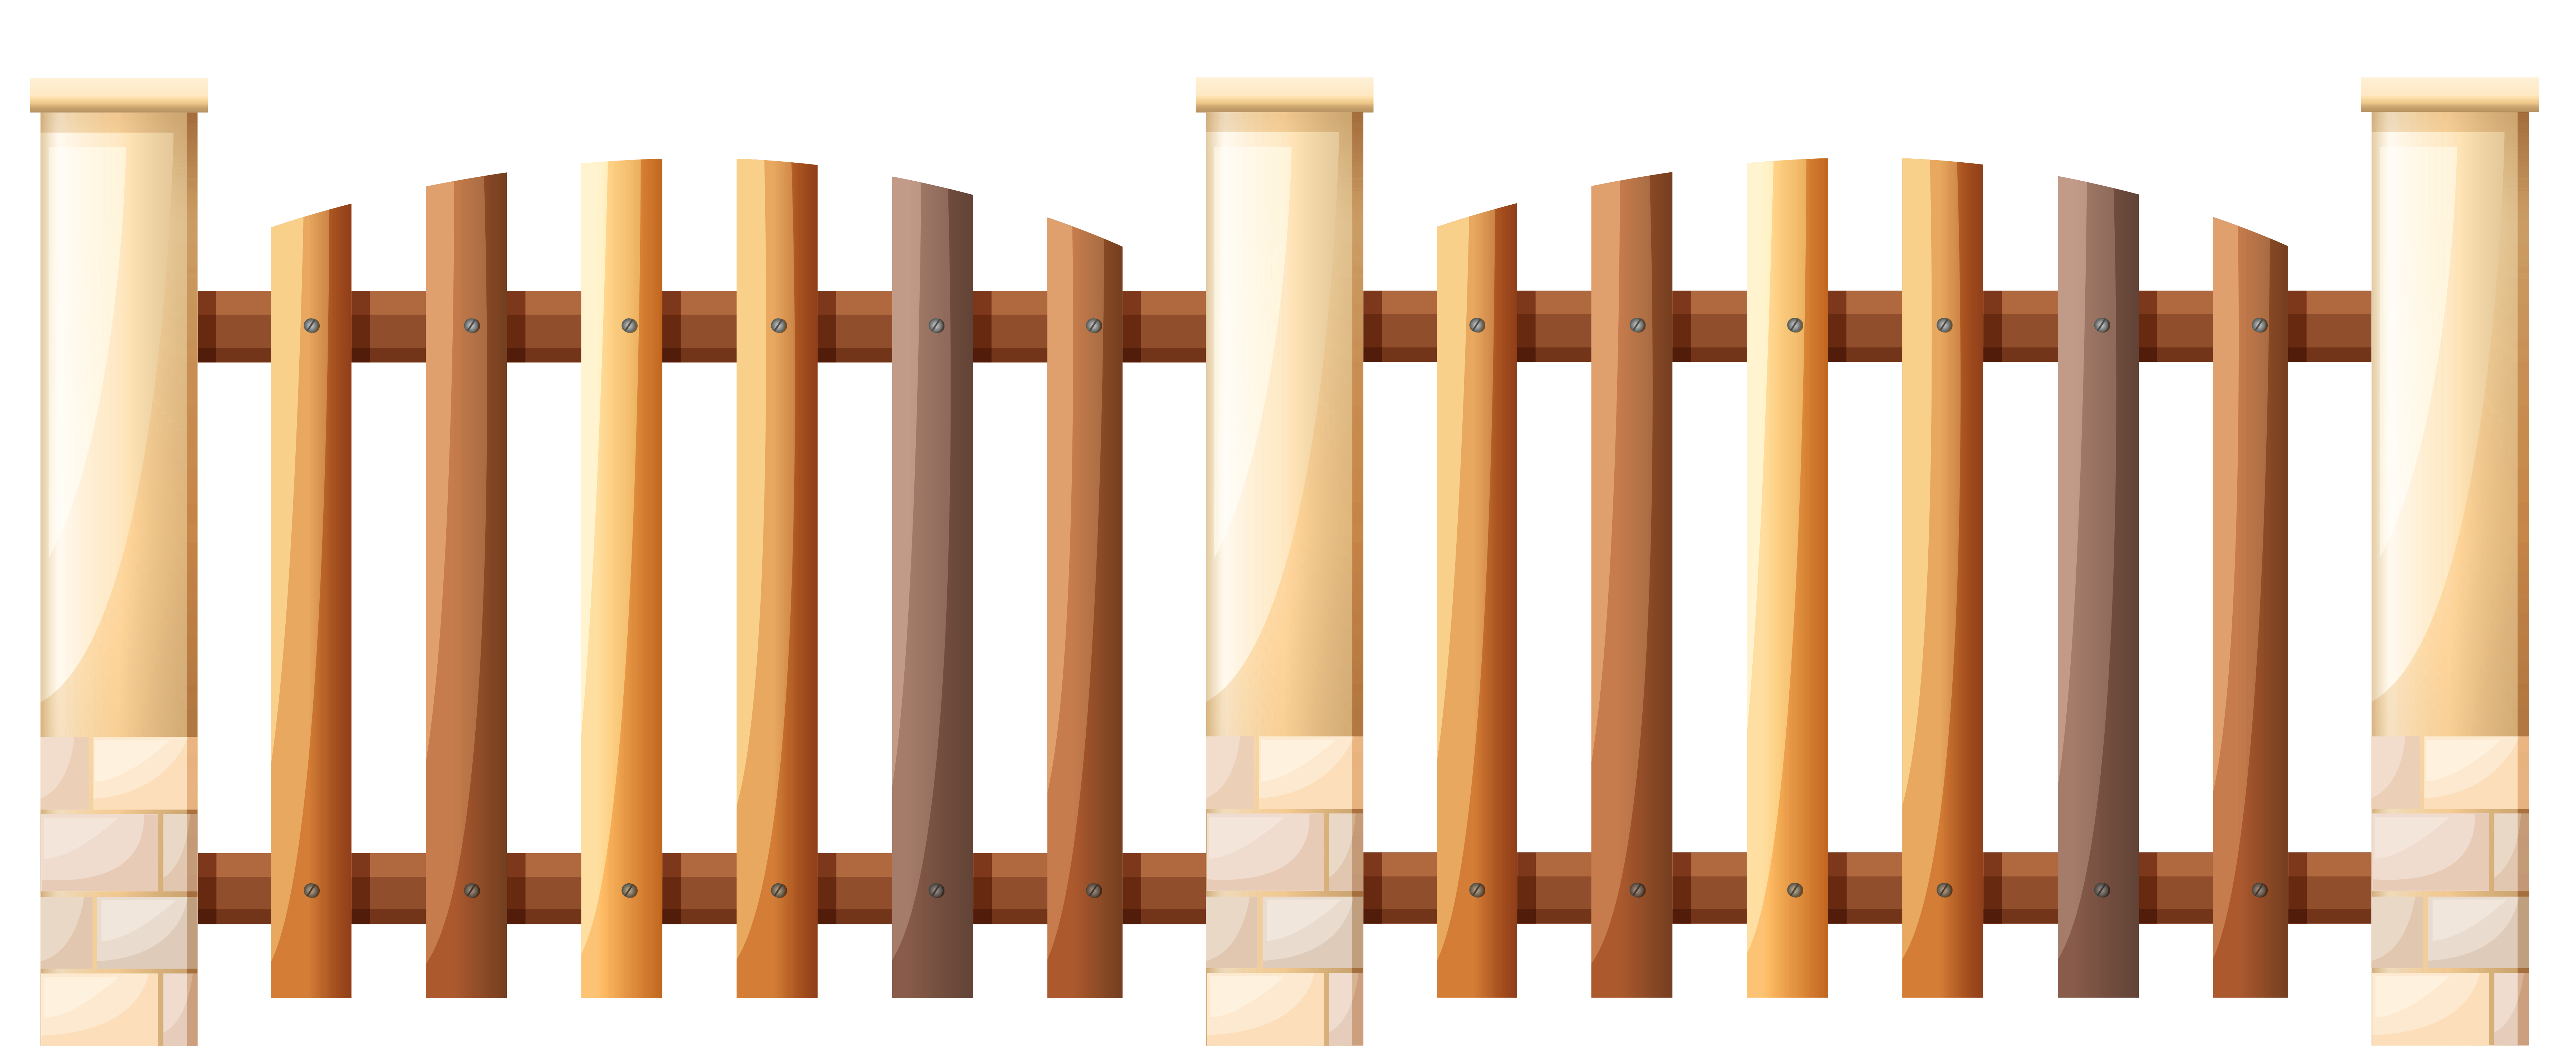 School fence clipart graphic freeuse stock Wooden Yard Fence PNG Clipart | Gallery Yopriceville - High-Quality ... graphic freeuse stock